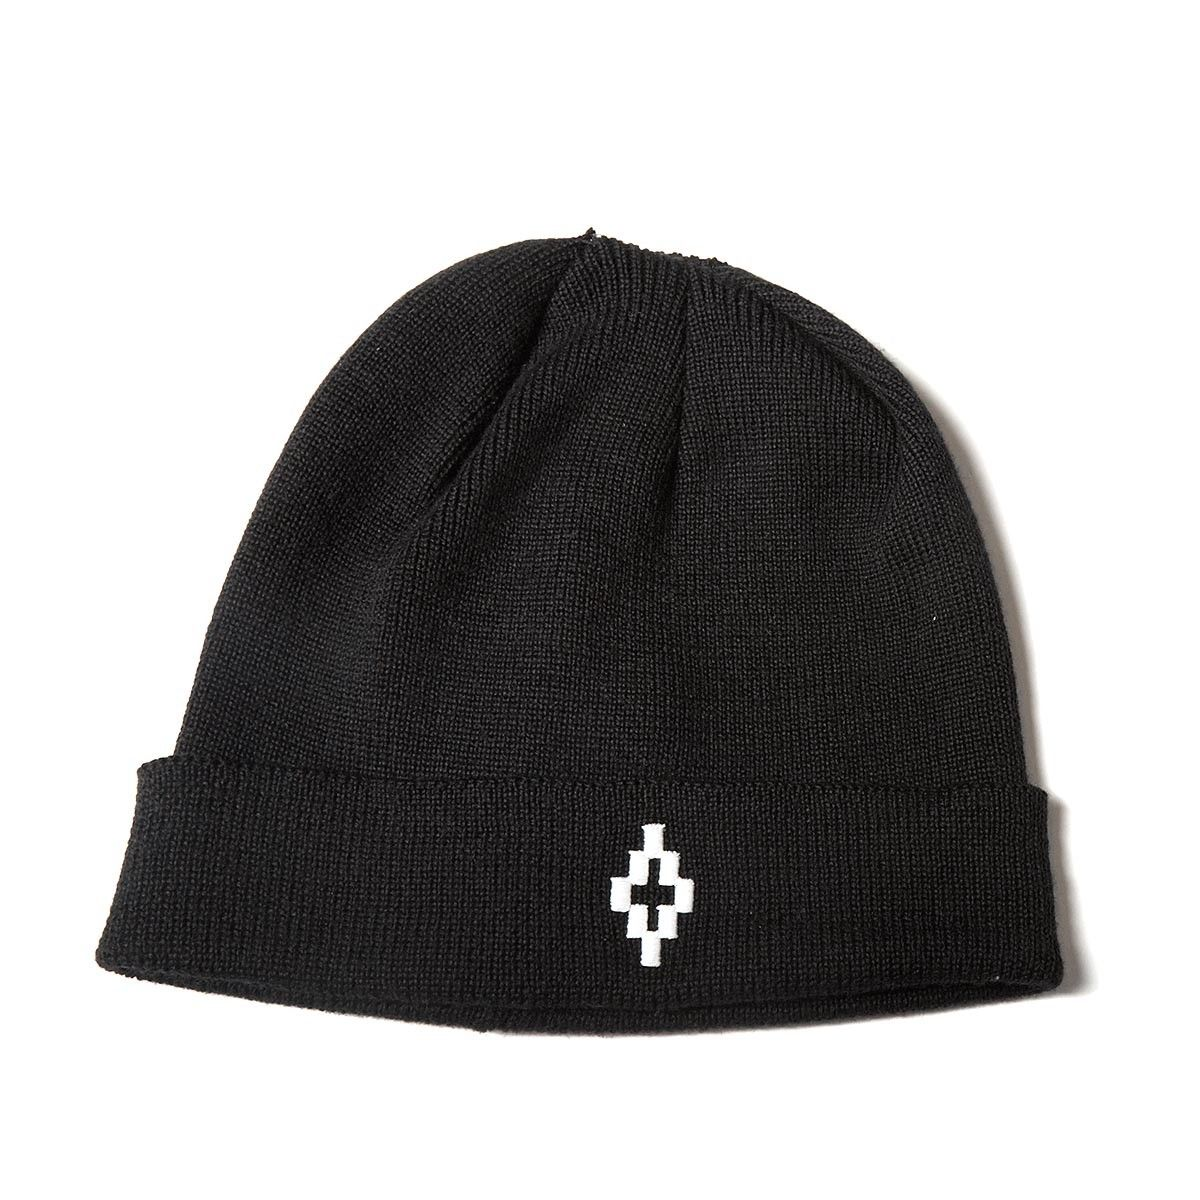 02224bb891c Cruz beanie from the F W2016-17 Marcelo Burlon County of Milan collection  in black